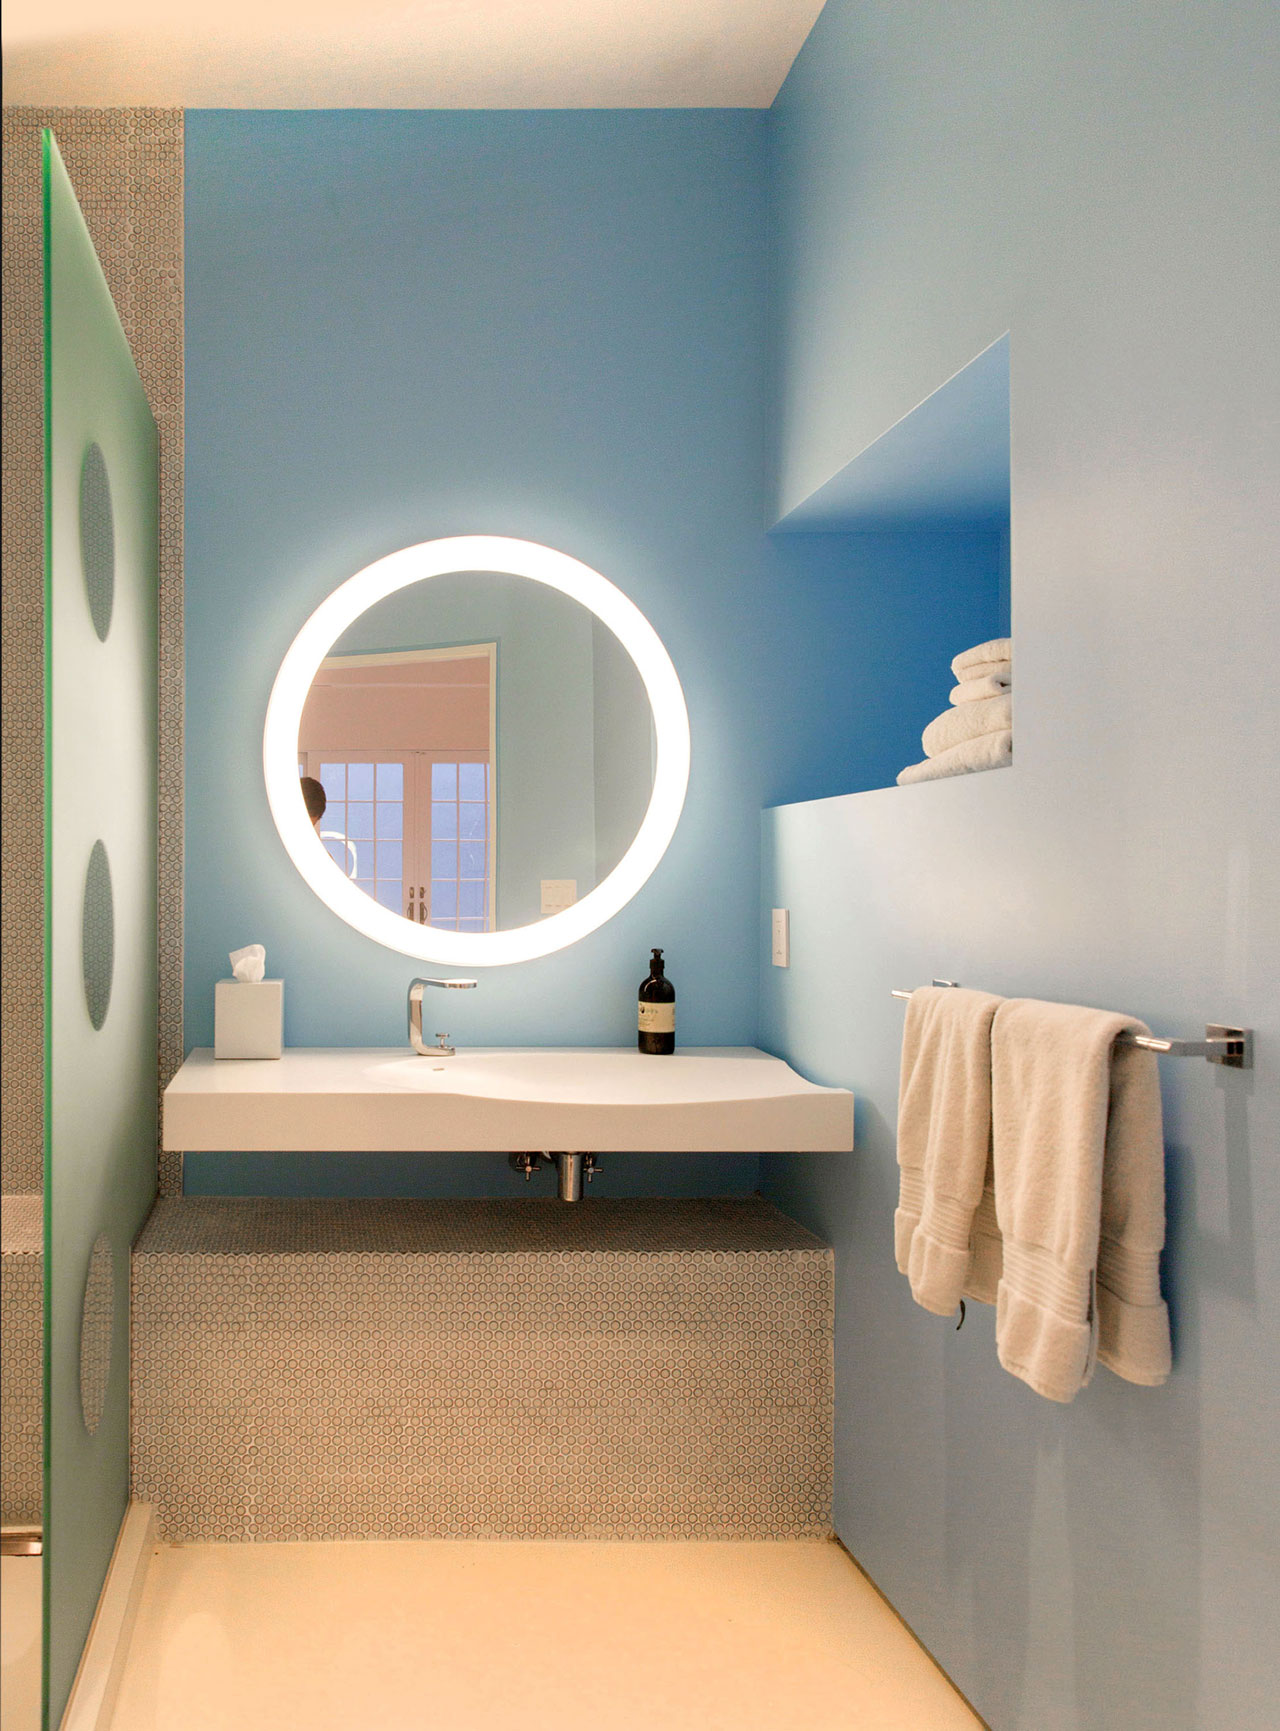 A basement bathroom that features design elements like small penny tiles, a translucent glass shower screen with clear circular windows, and a round vanity mirror with integrated lighting.